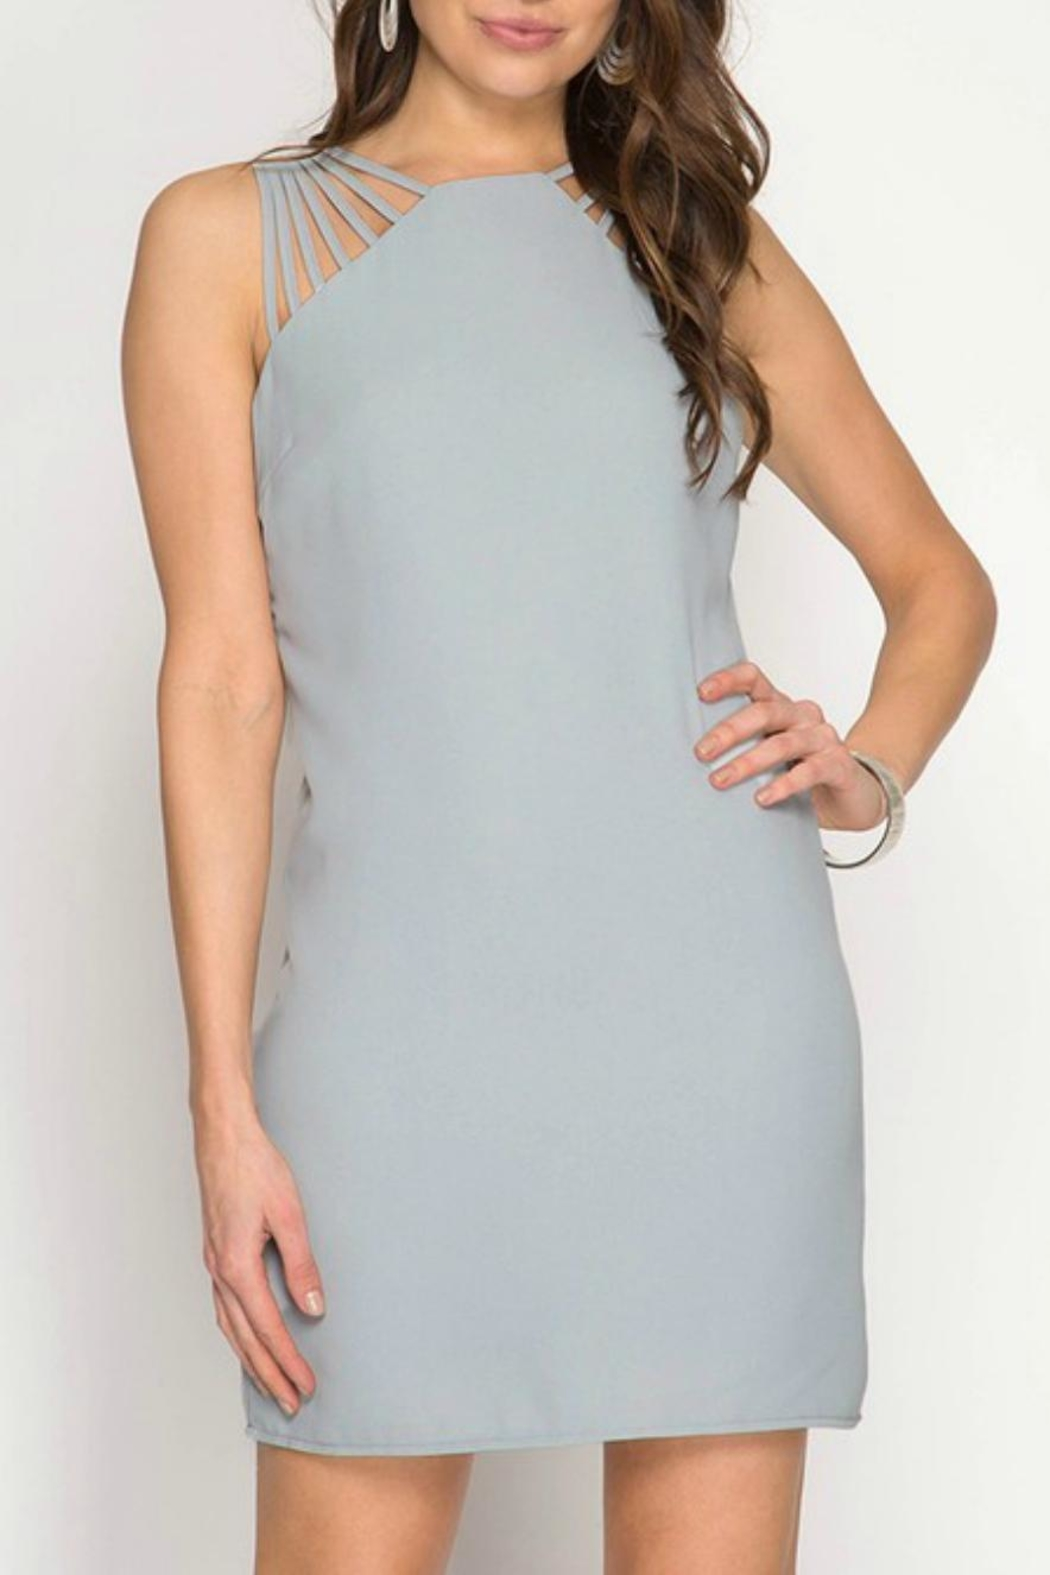 She + Sky Multi-Strap Fitted Dress - Main Image